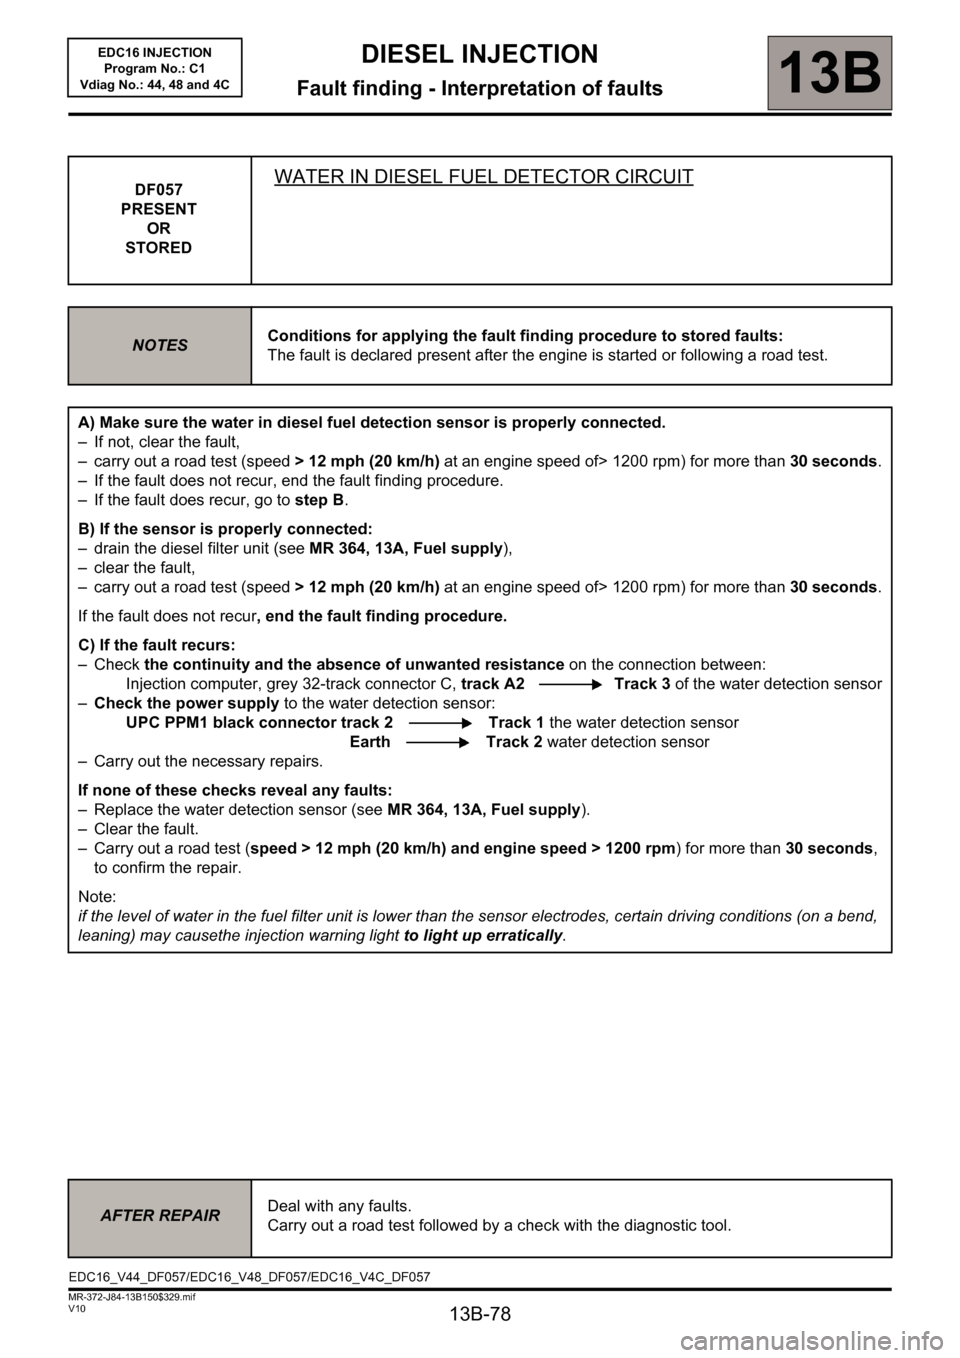 RENAULT SCENIC 2011 J95 / 3.G Engine And Peripherals EDC16 Injection Workshop Manual, Page 78